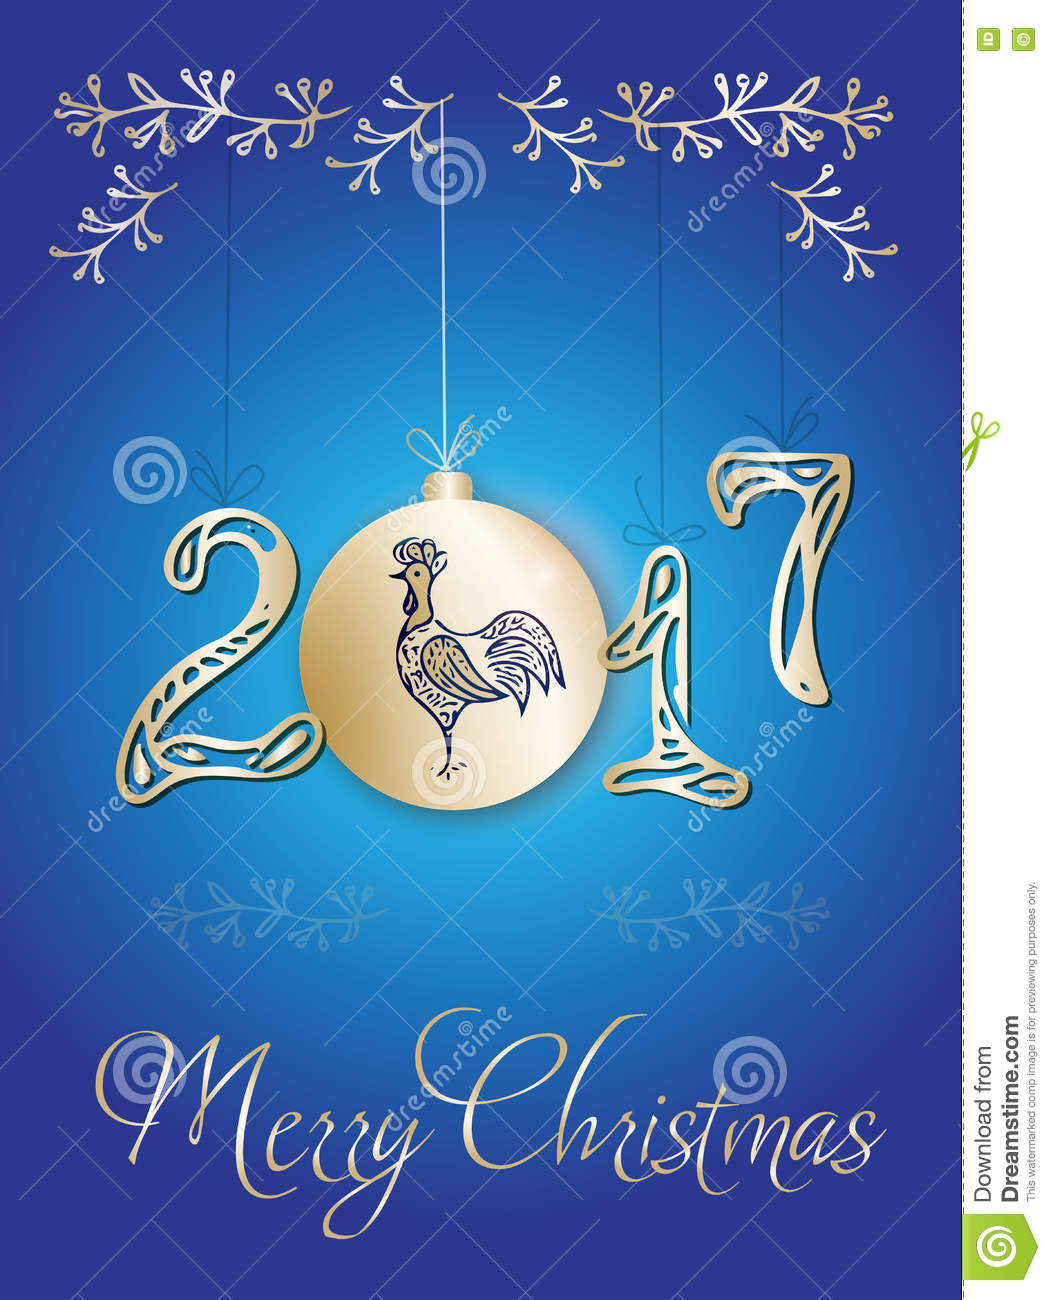 download christmas greeting card 2017 with rooster stock illustration illustration of backdrop hand - Christmas Photo Cards 2017